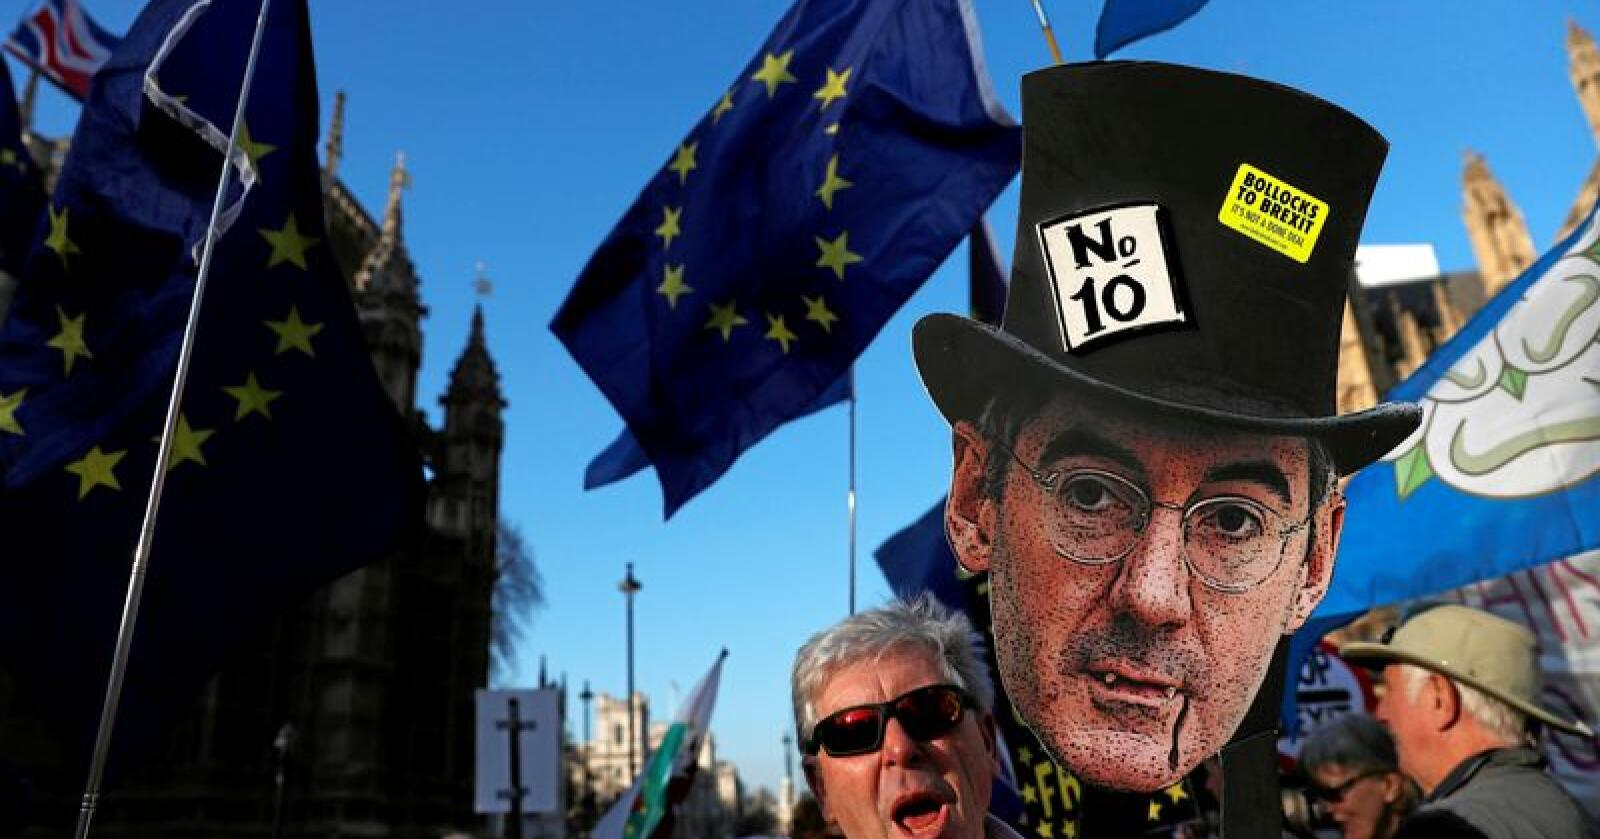 Demonstrasjon mot brexit i London i februar. Foto: Alastair Grant / AP Photo NTB scanpix